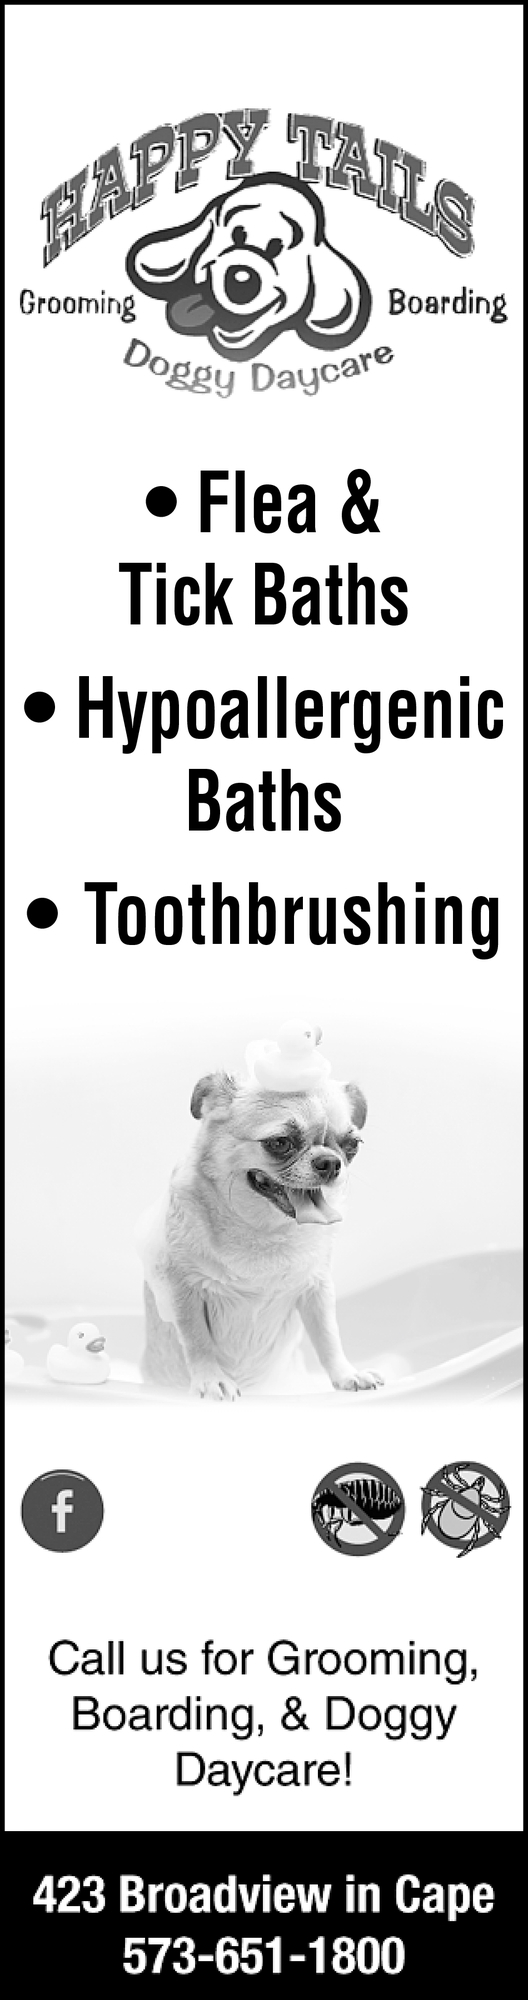 Flea & Tick Baths